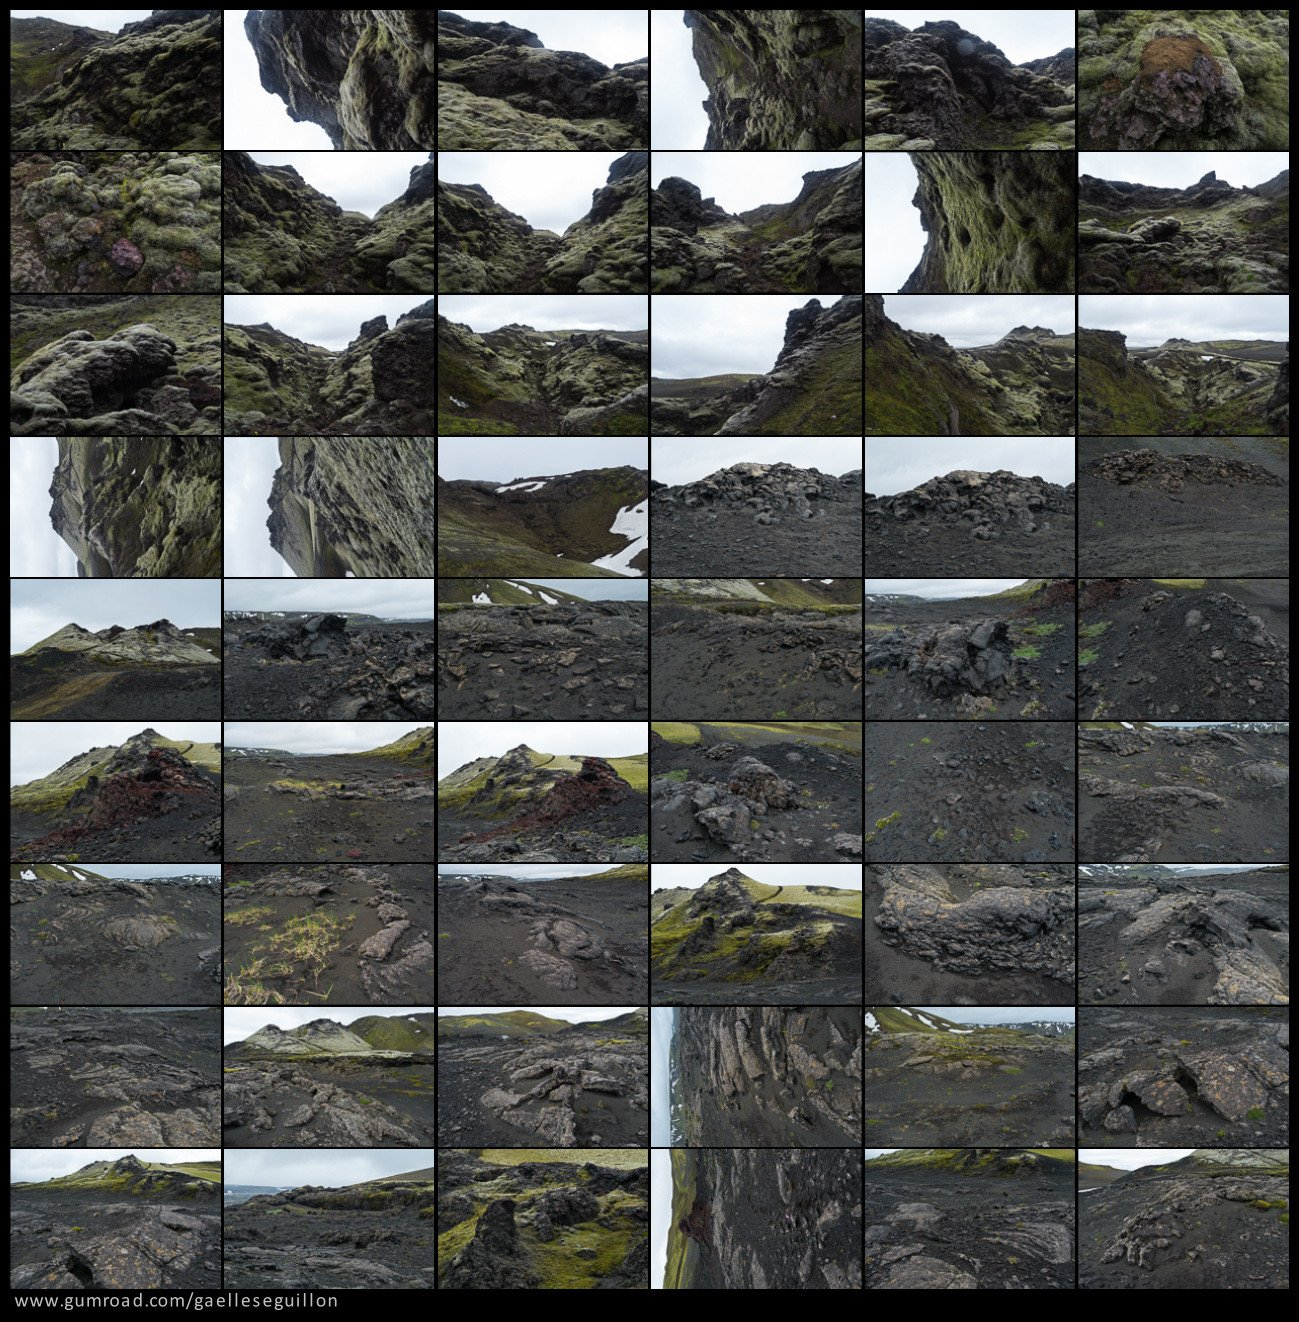 Craters%26volcanicland preview 04